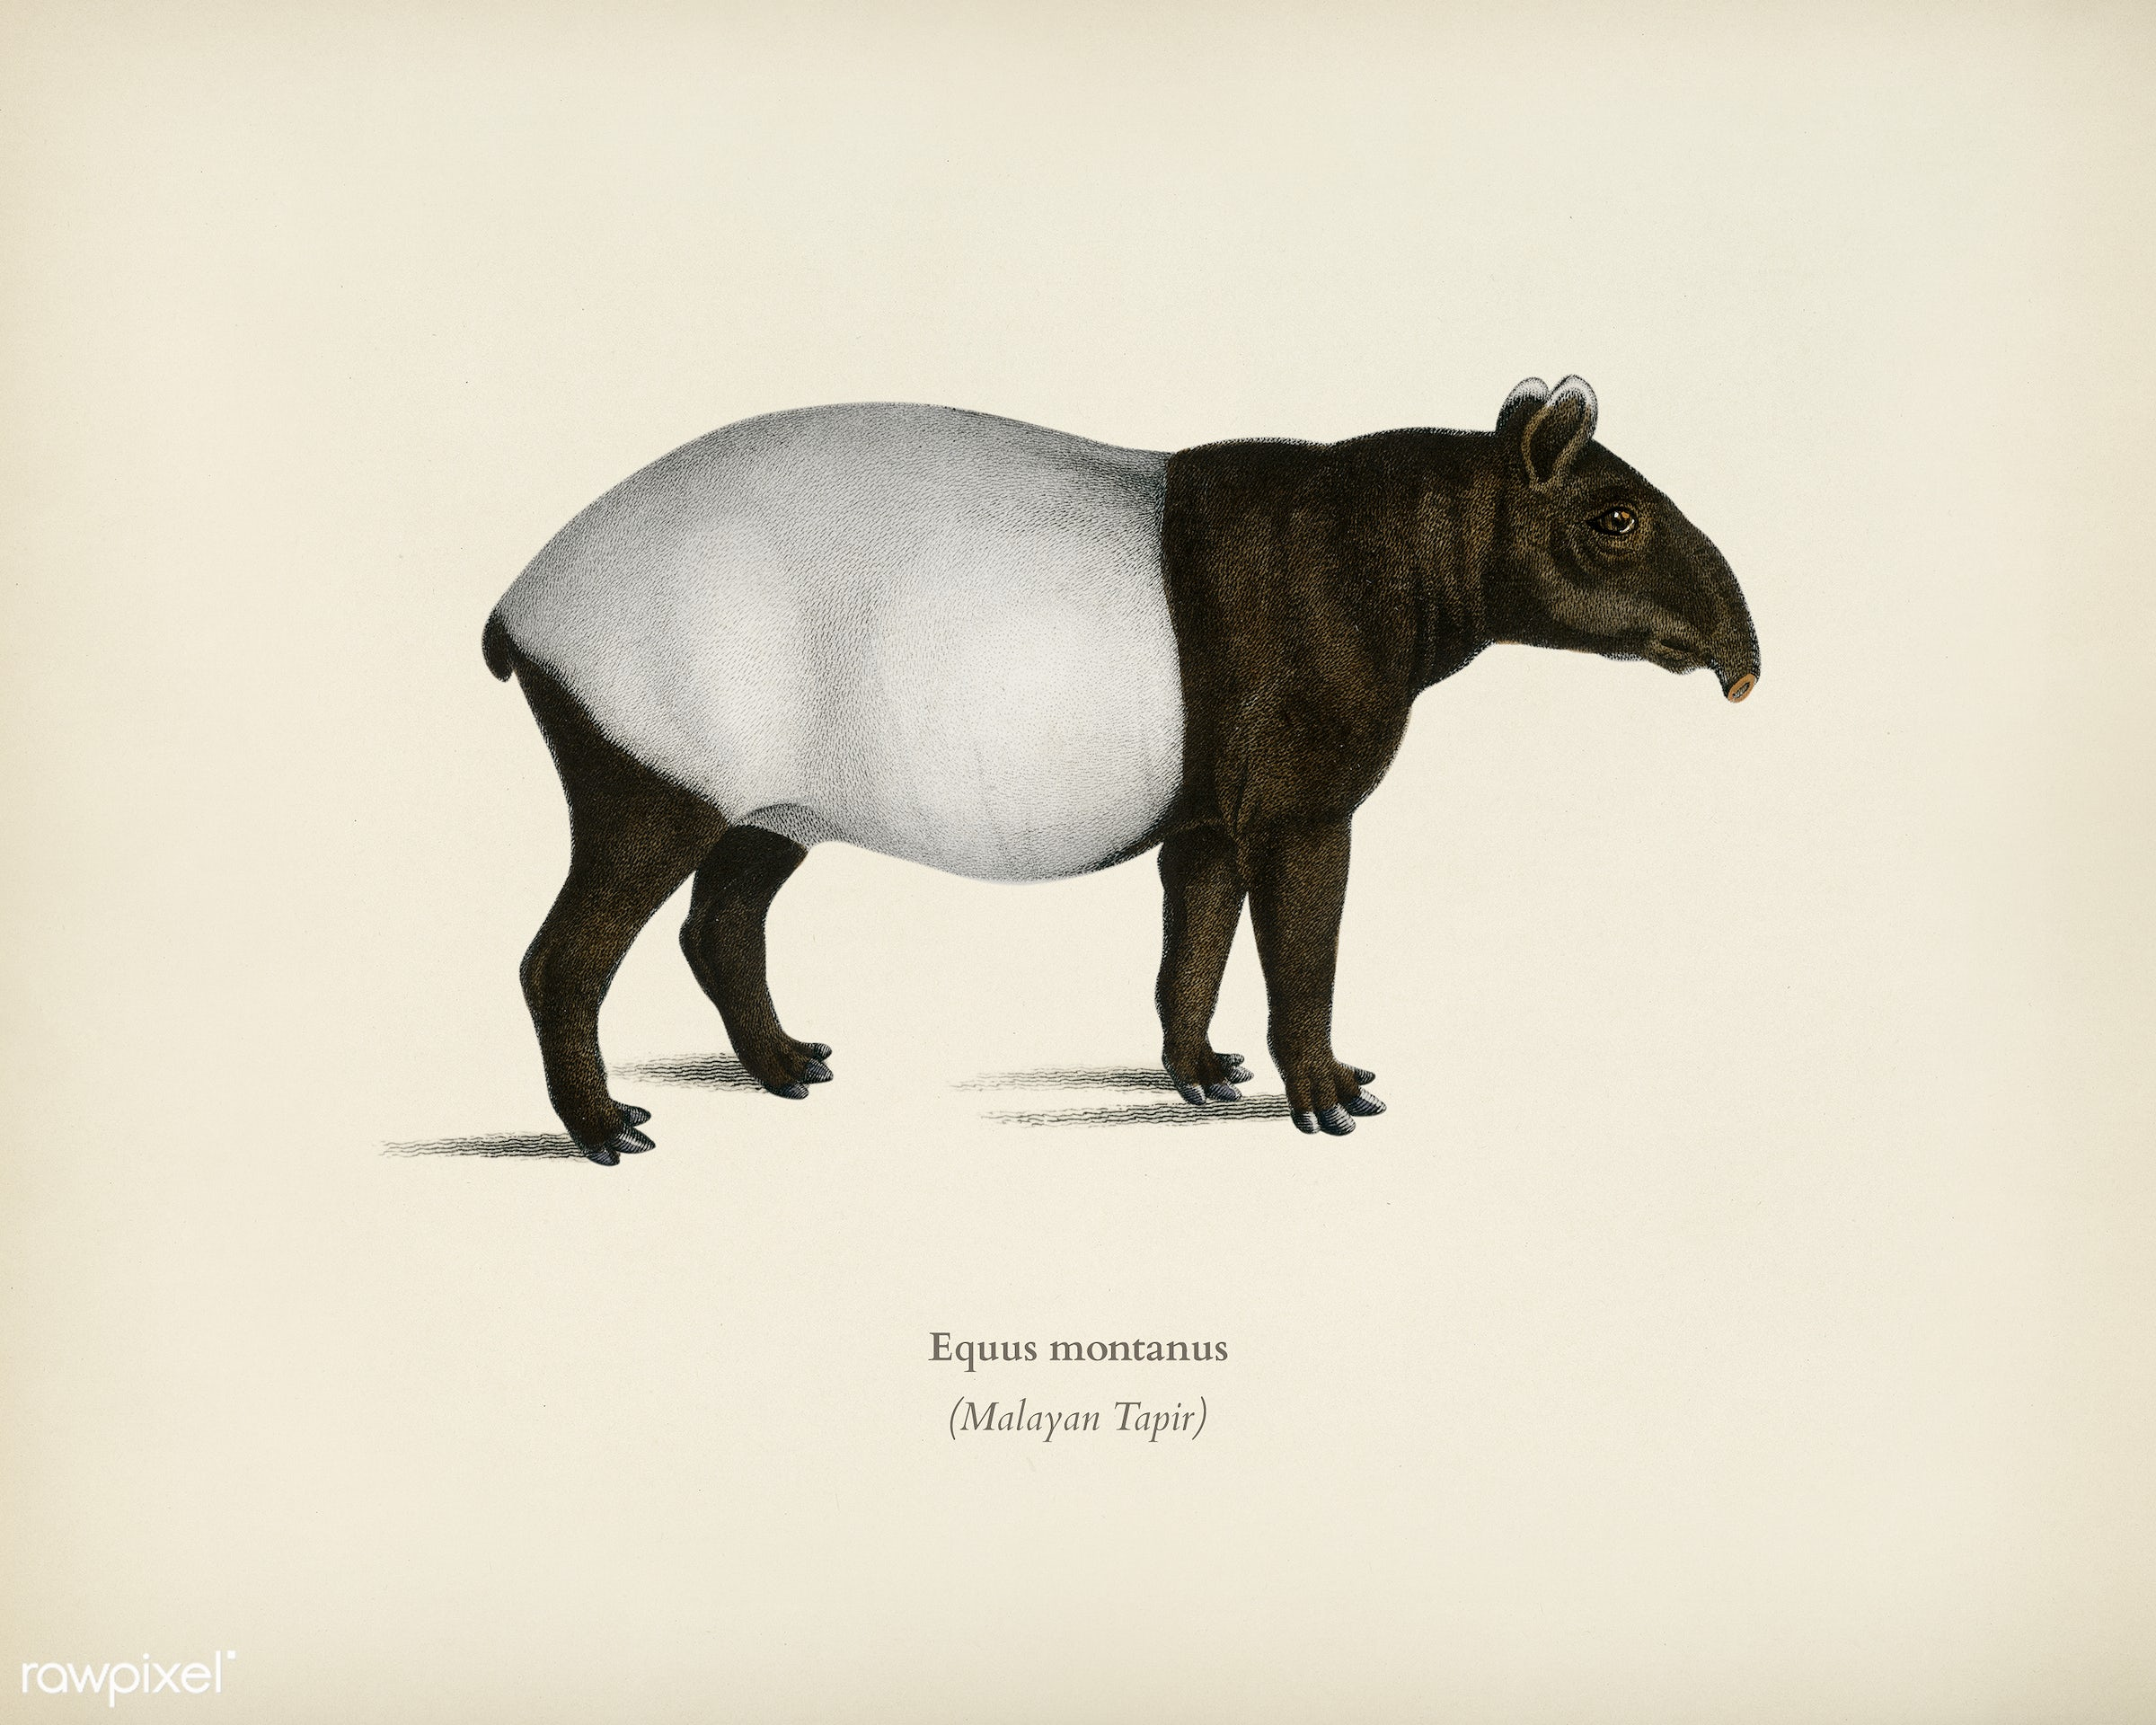 Malayan Tapir (Equus Montanus) illustrated by Charles Dessalines D' Orbigny (1806-1876). Digitally enhanced from our own...